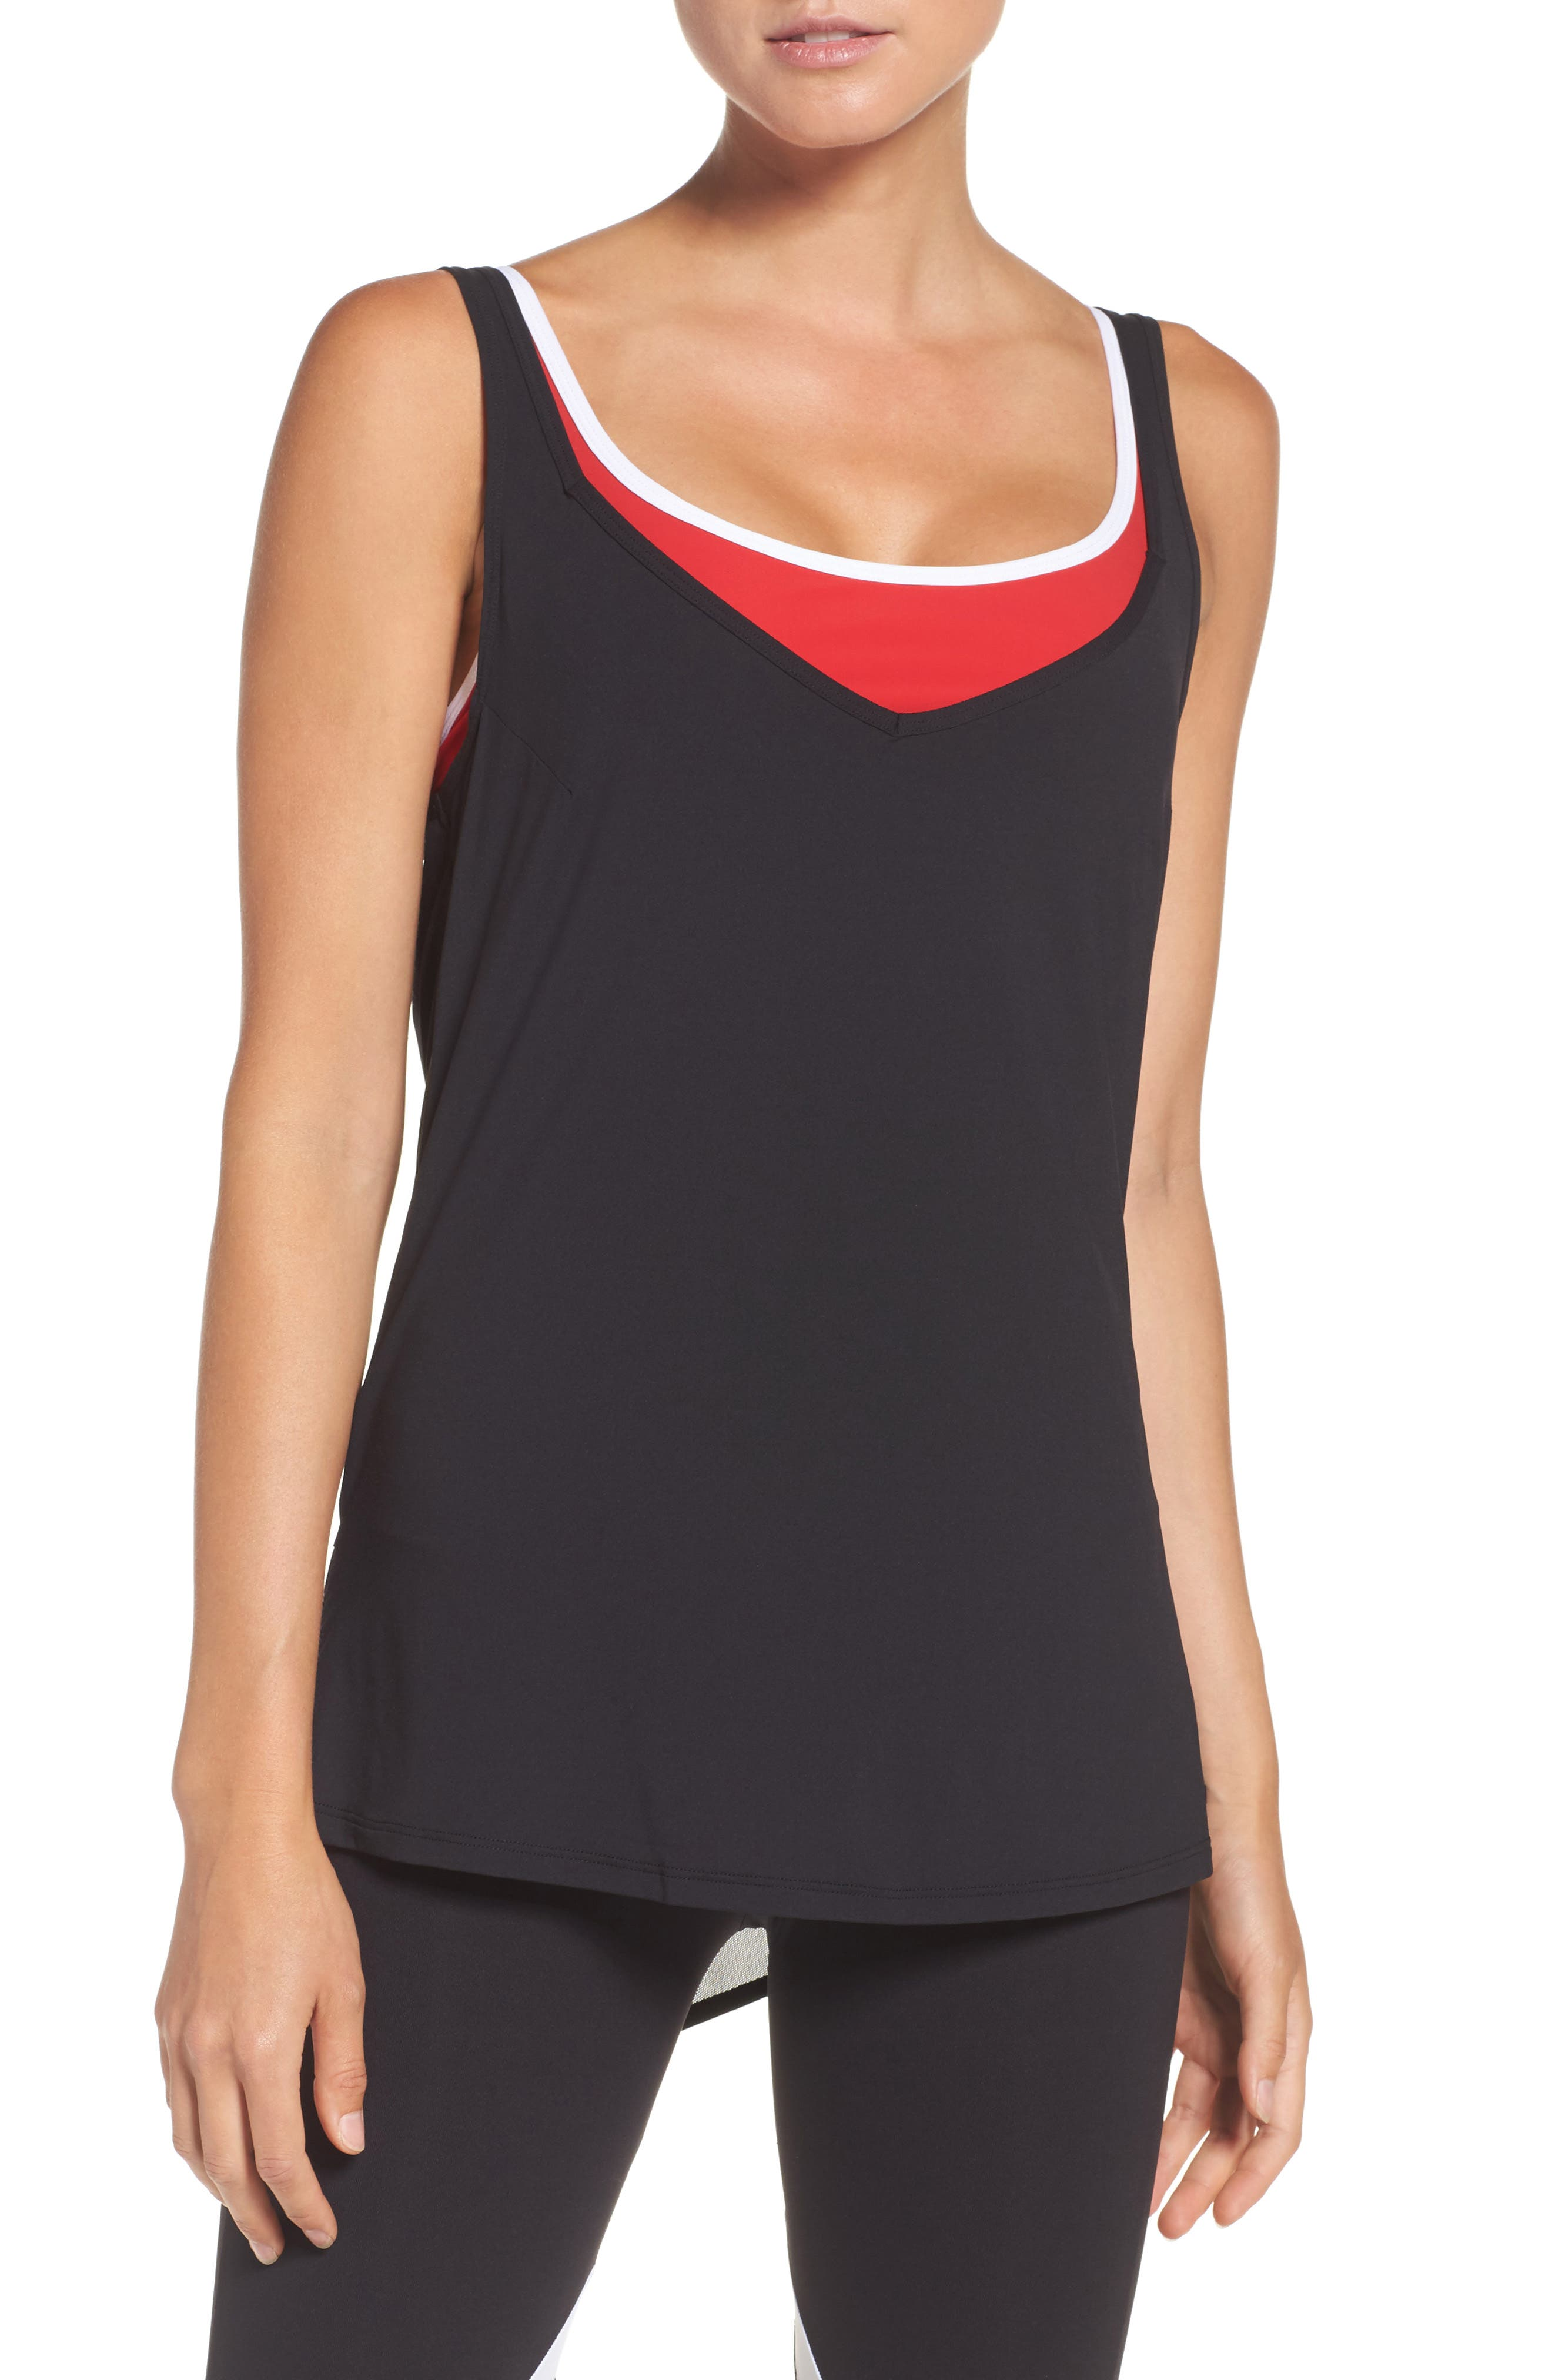 BoomBoom Athletica 2-in-1 Tank,                         Main,                         color, 001